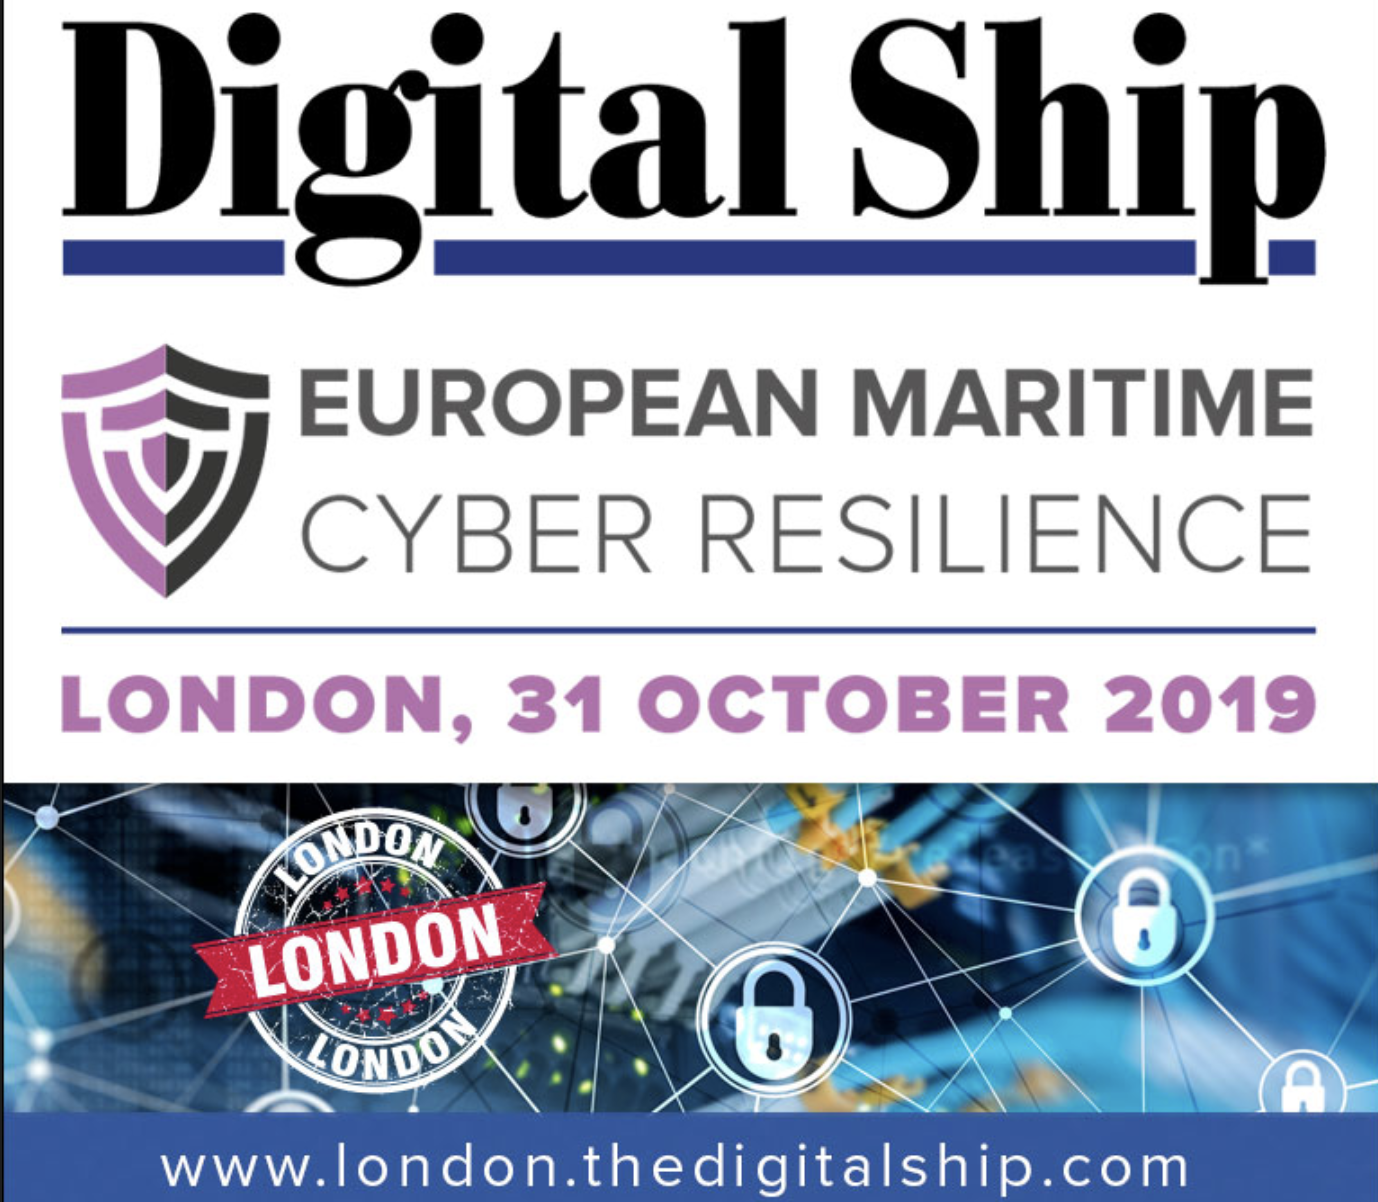 Icon representing European Maritime Cyber Resilience Forum - London - October 31